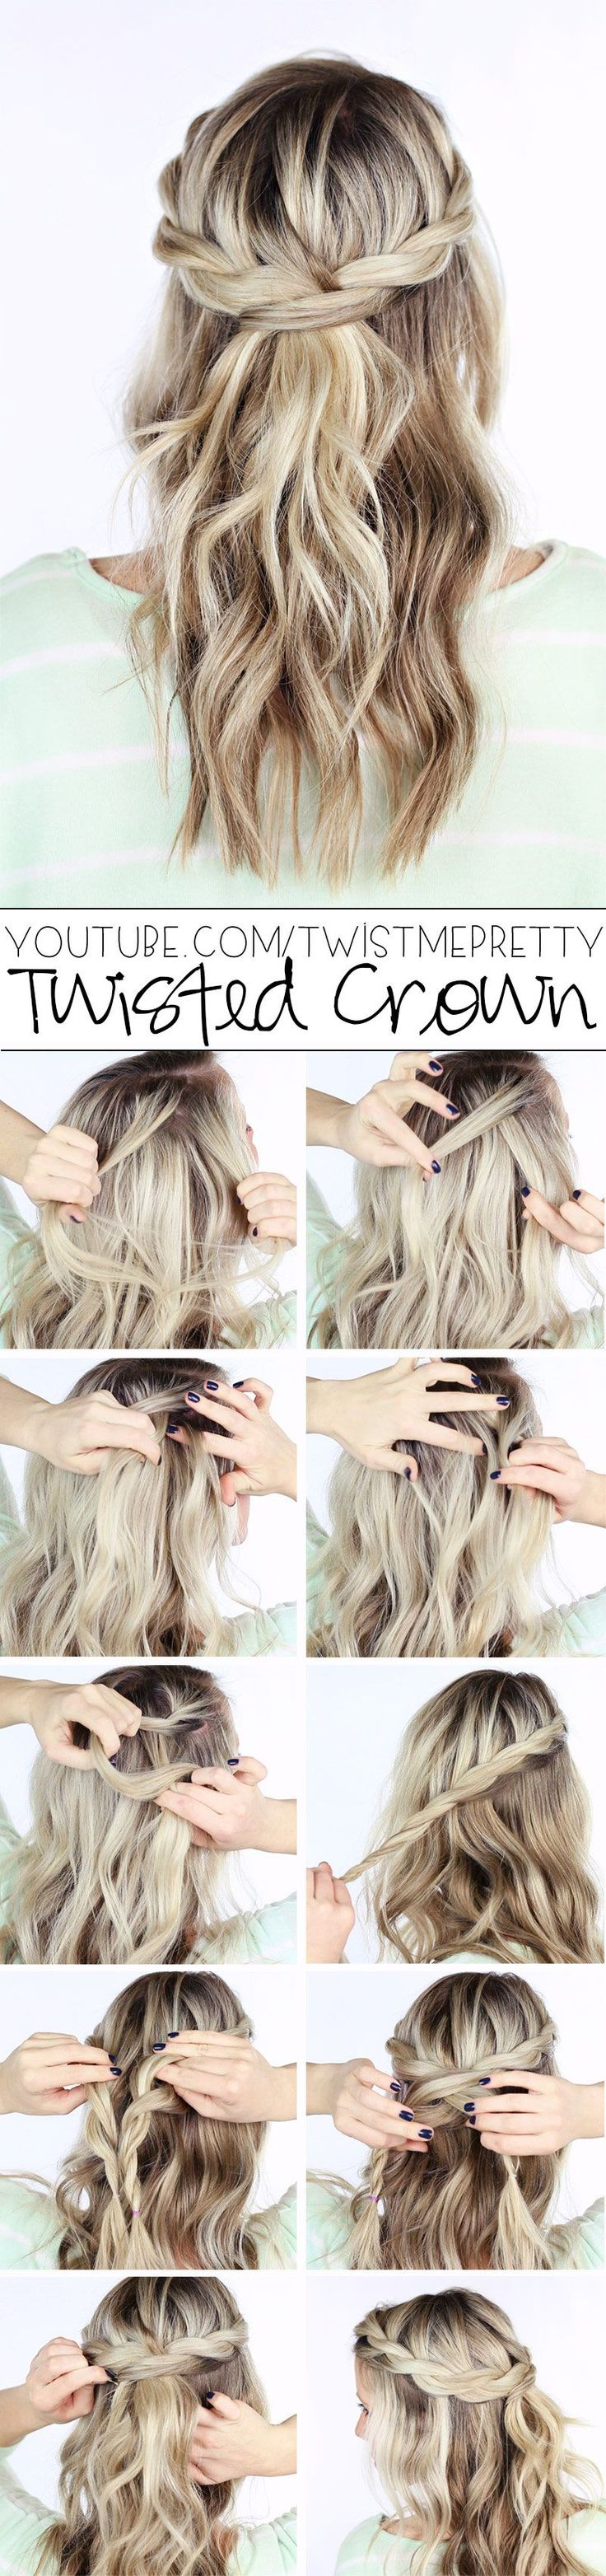 Twisted Crown Braid Tutorial - Twist Me PrettyTwist Me Pretty